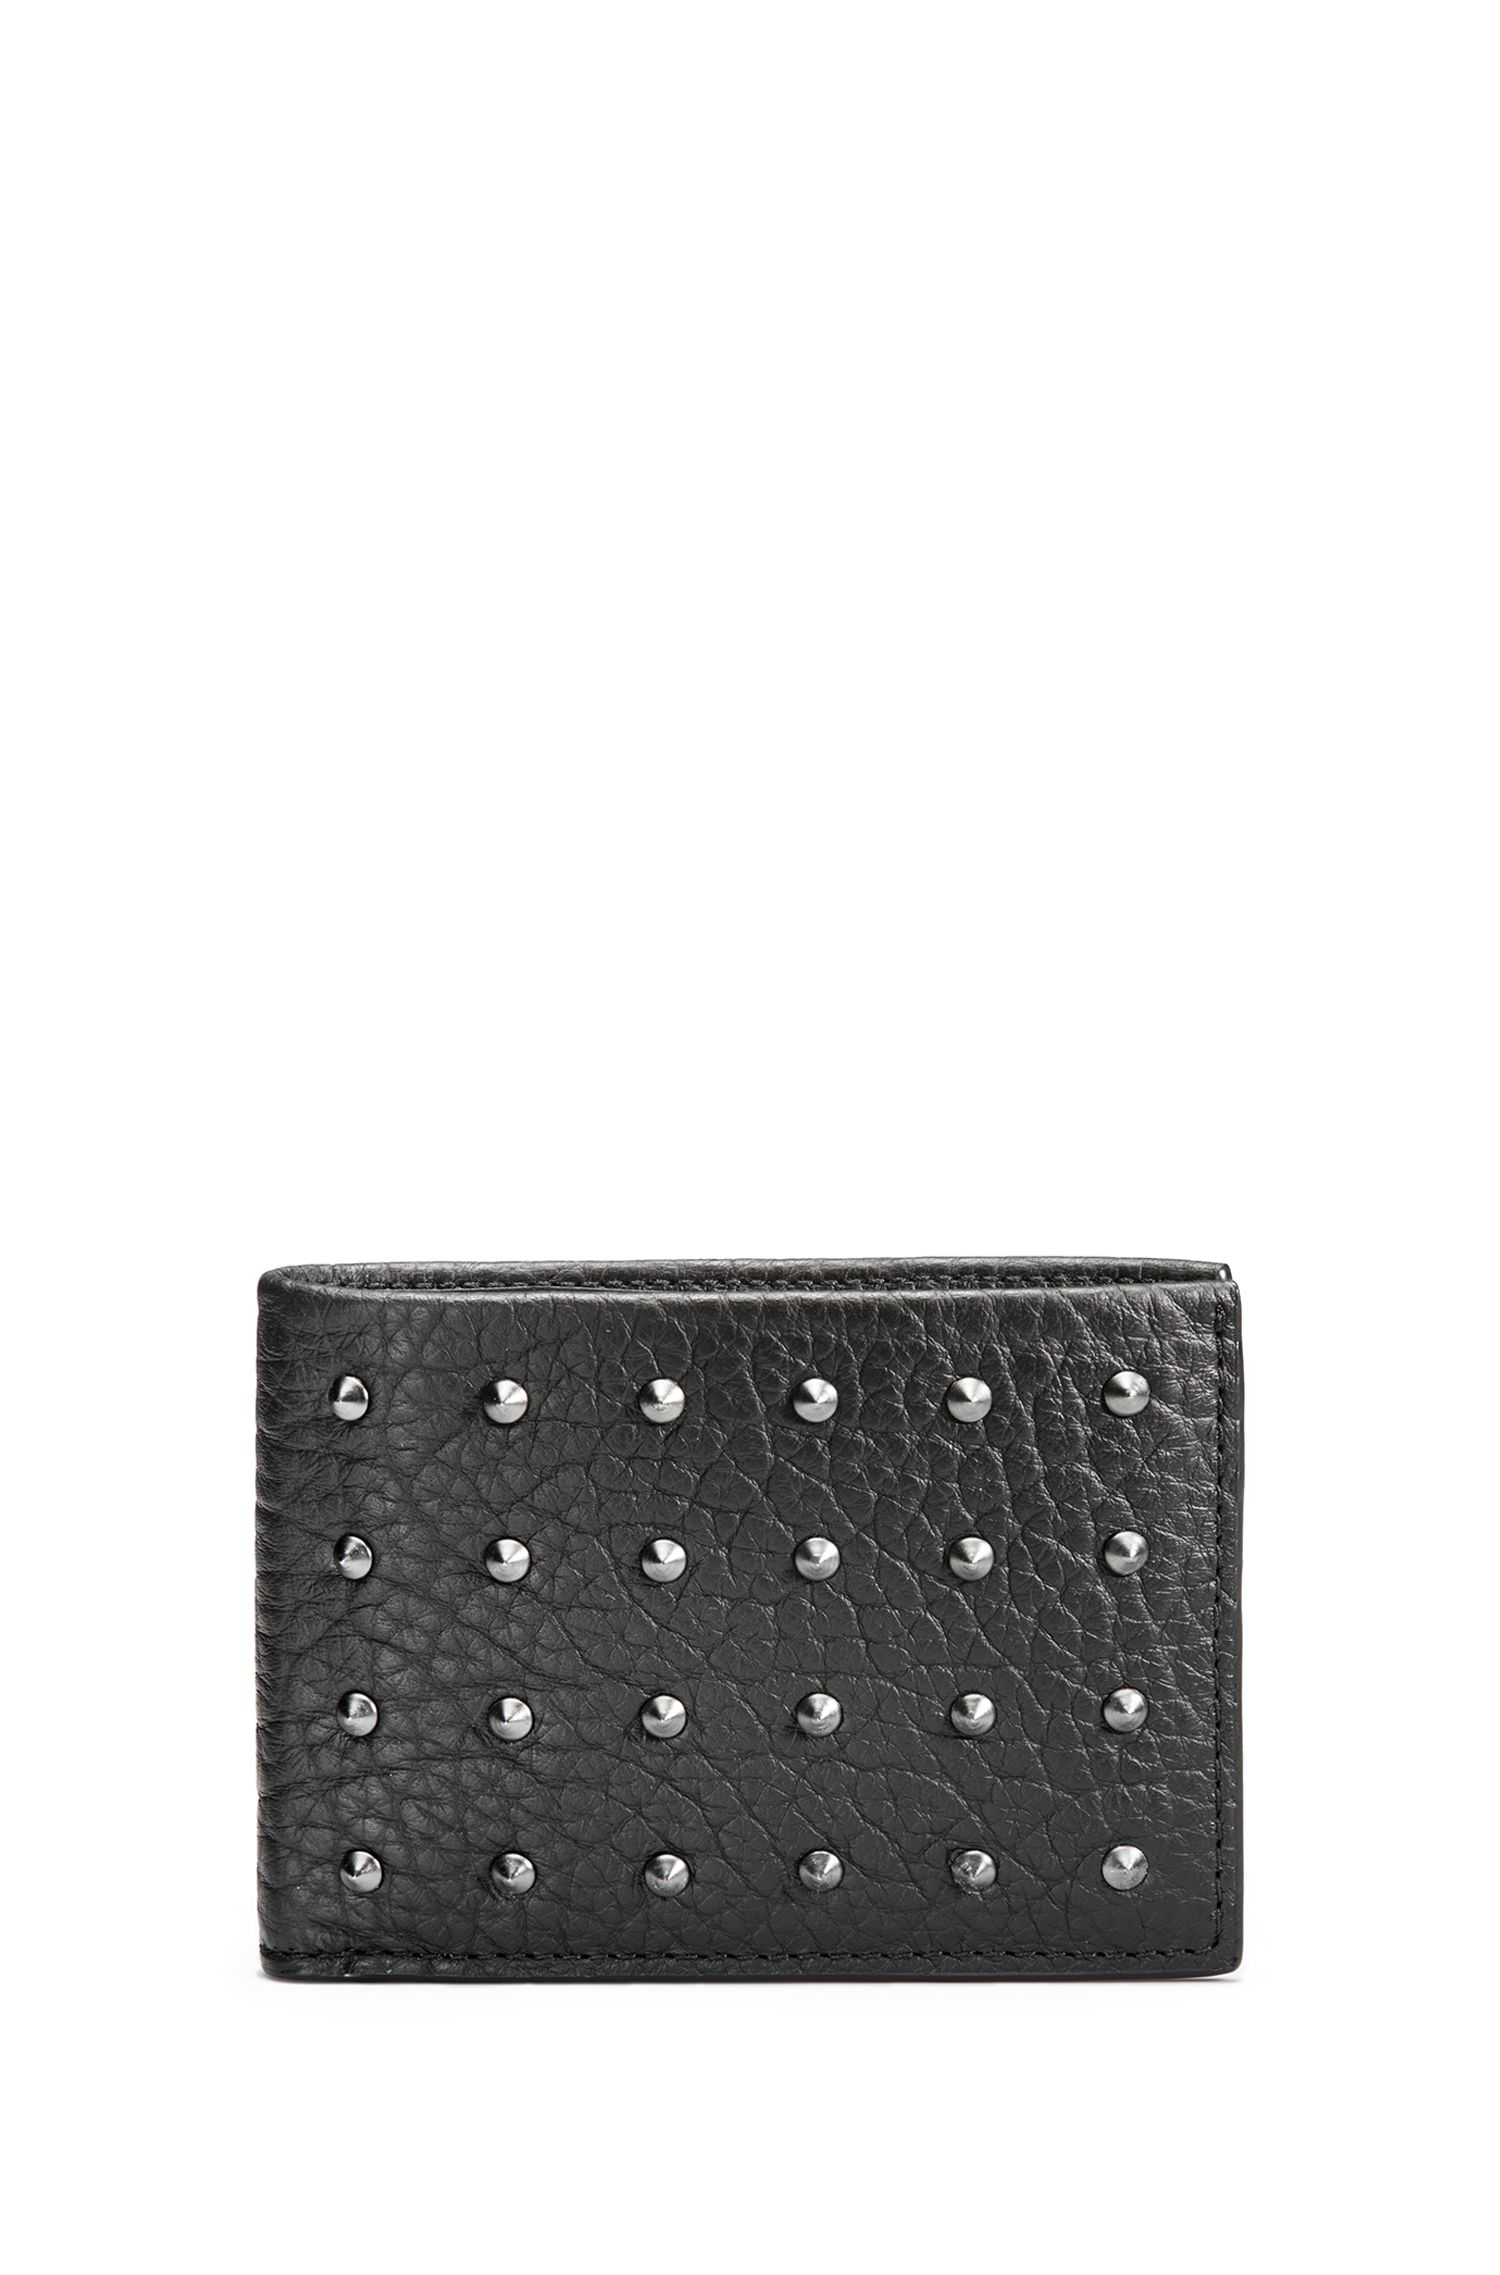 Studded Leather Wallet | Victorian S S 6CC